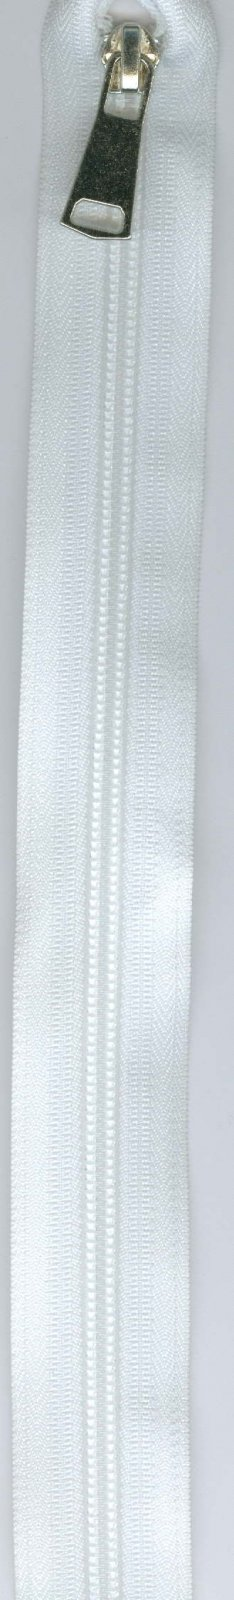 16 Separating Zipper #5 - White with Silver Pull